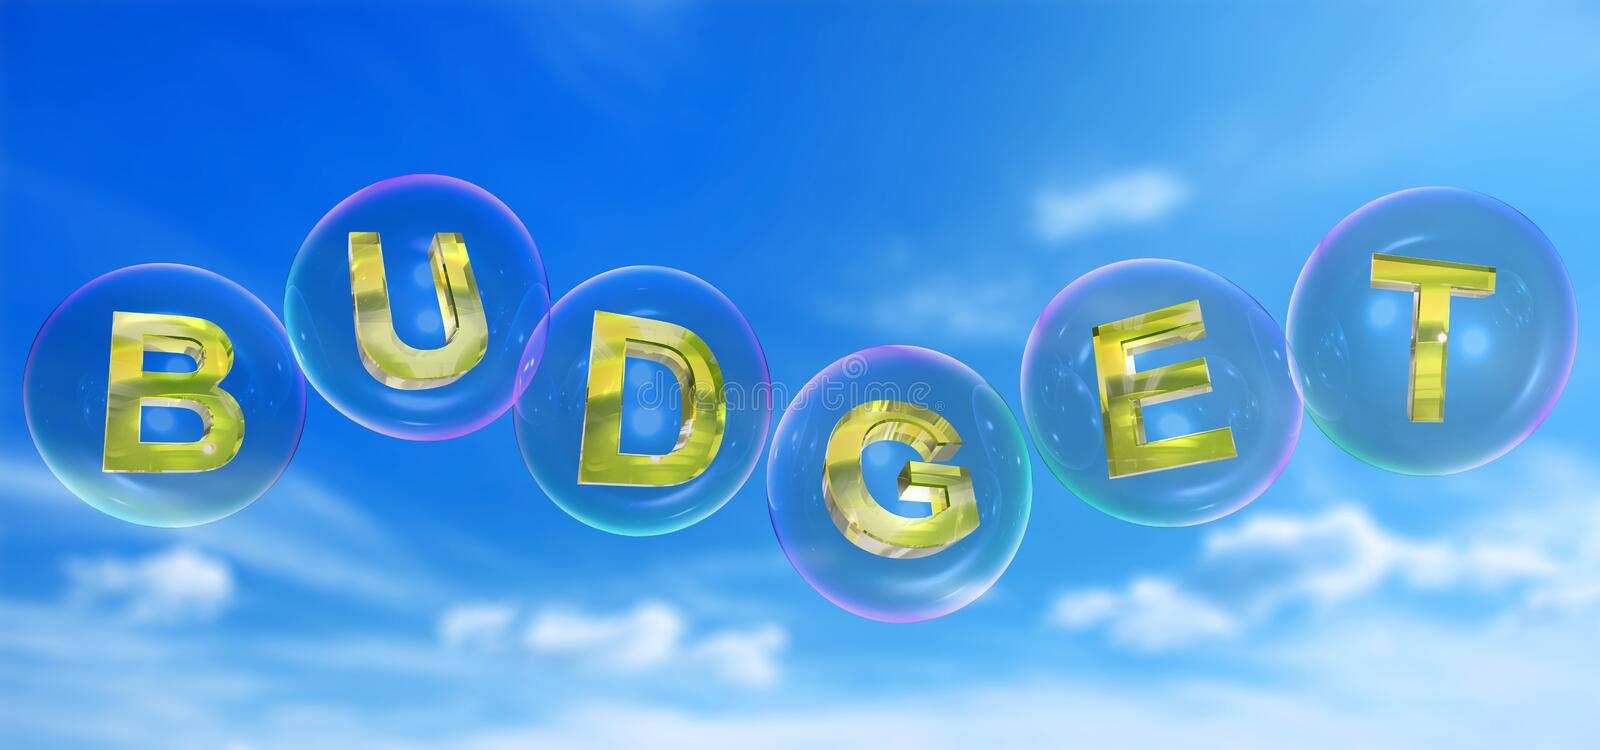 The budget word in bubble stock illustration